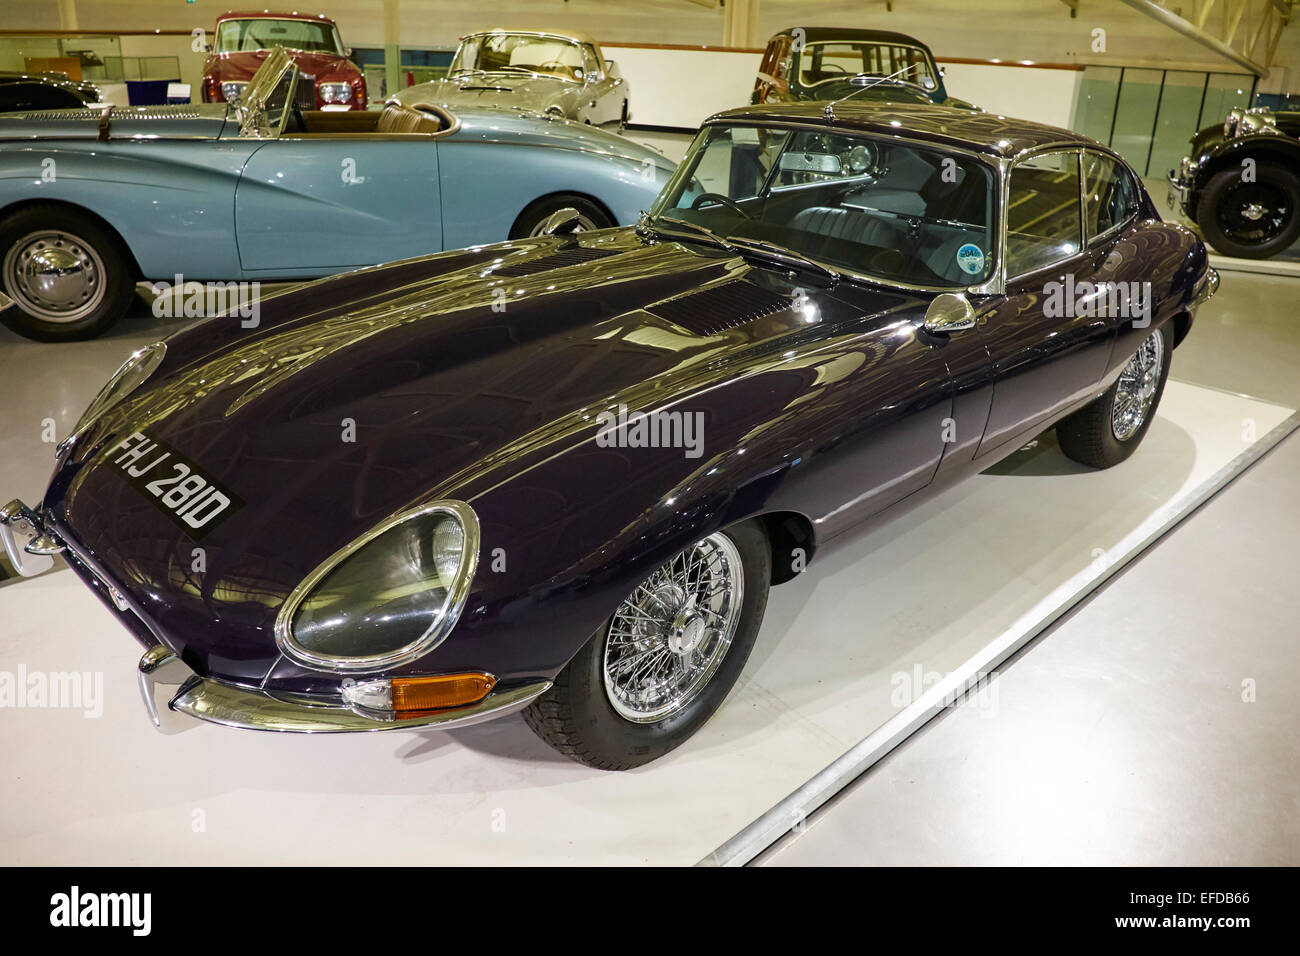 1966 Jaguar E Type Coombs Conversion Heritage Motor Centre